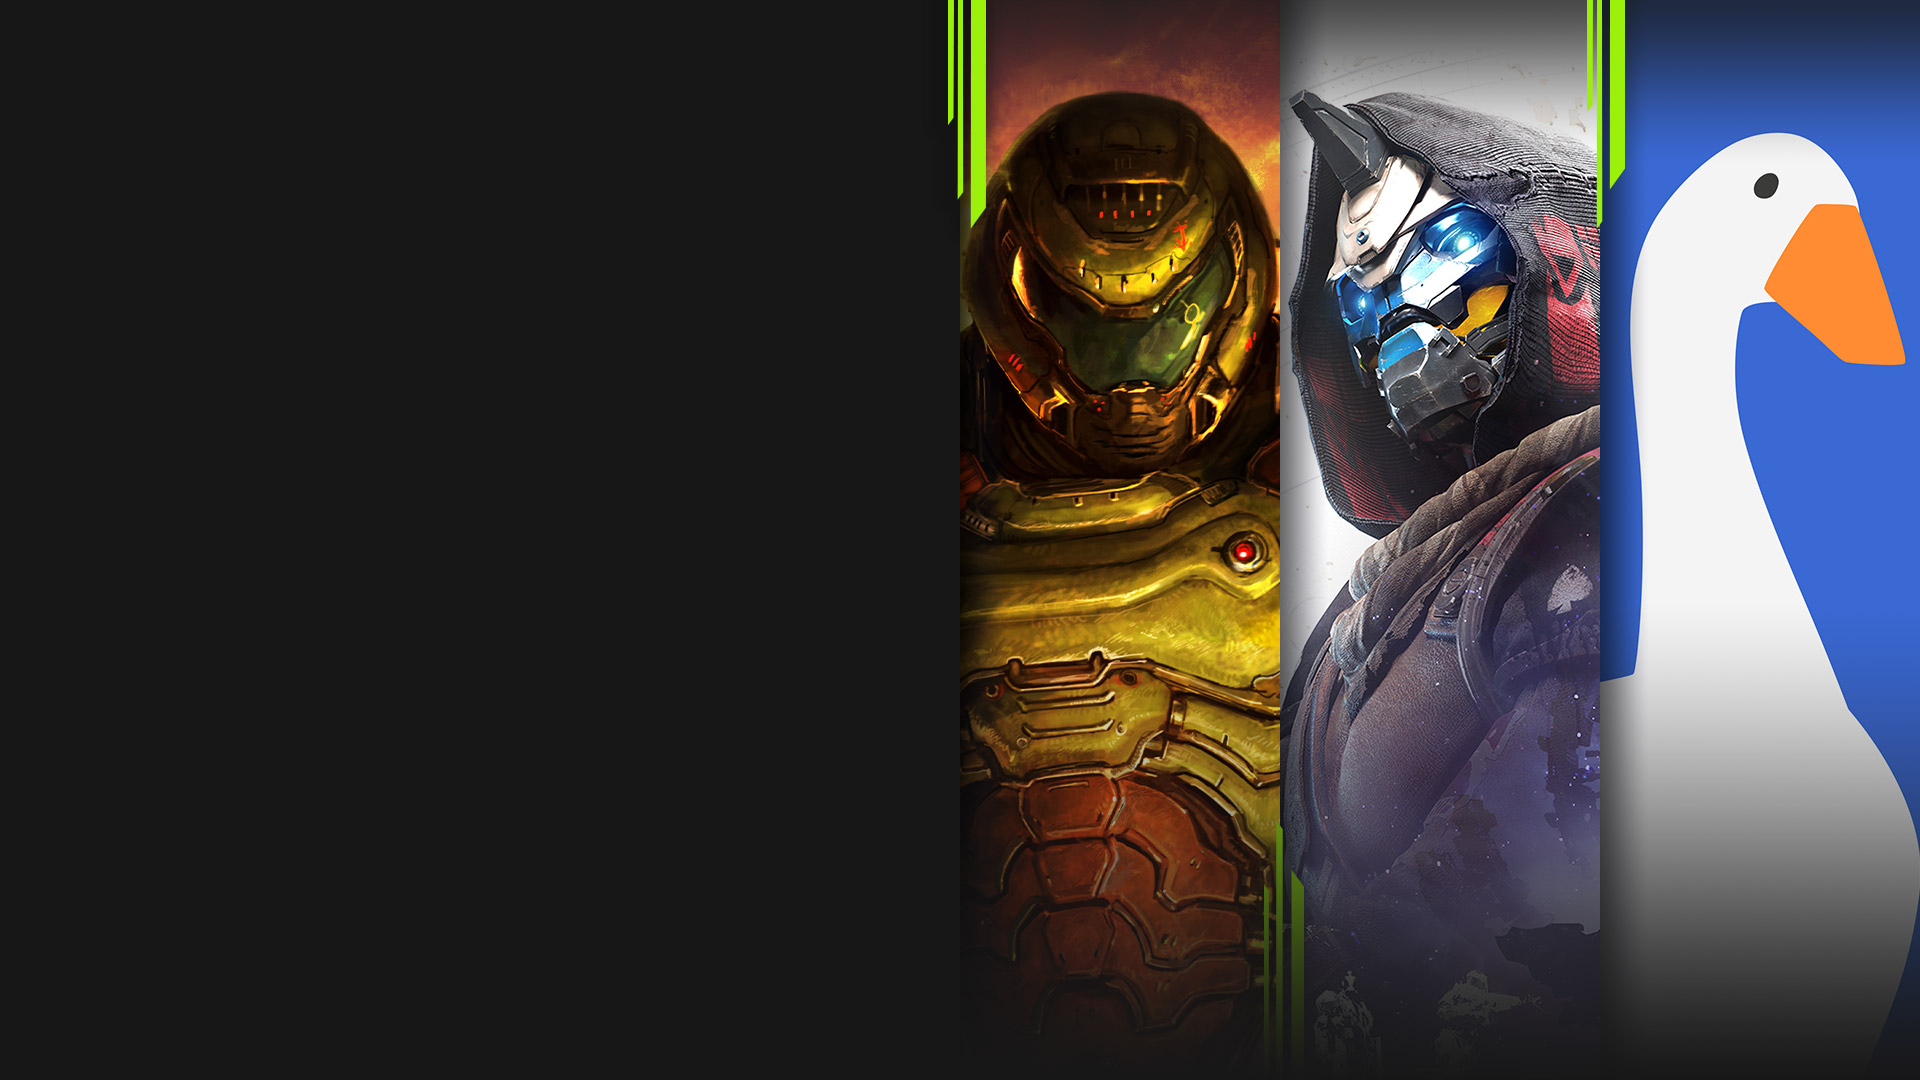 Imágenes de varios juegos disponibles con Xbox Game Pass, como Doom Eternal, Destiny 2 y Untitled Goose Game.